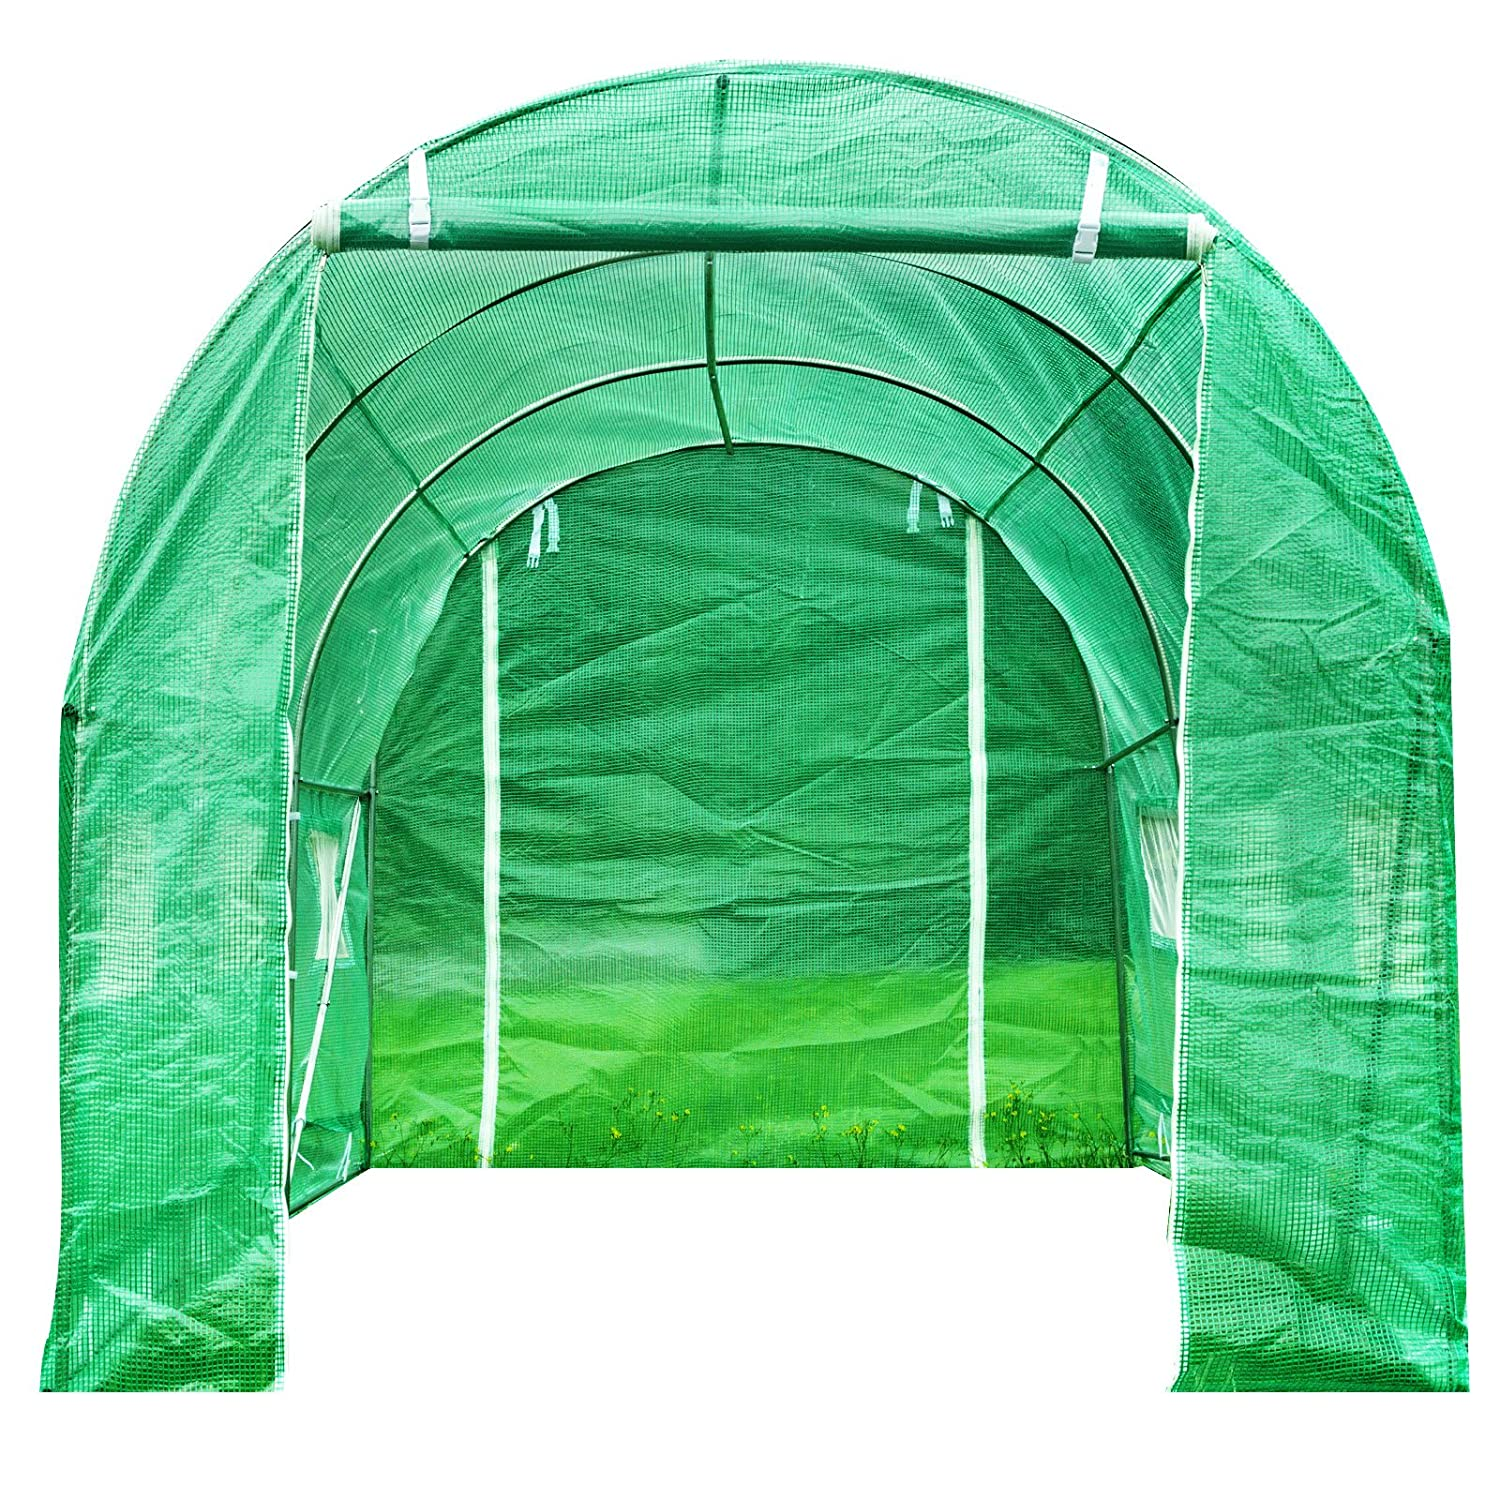 4M X 2M Superworth 4M X 2M Fully Galvanised Steel Frame Greenhouse Cultivation Run Polly Tunnel 8 m² Area 2M Height 6 Windows 2 Doors 3 Sections